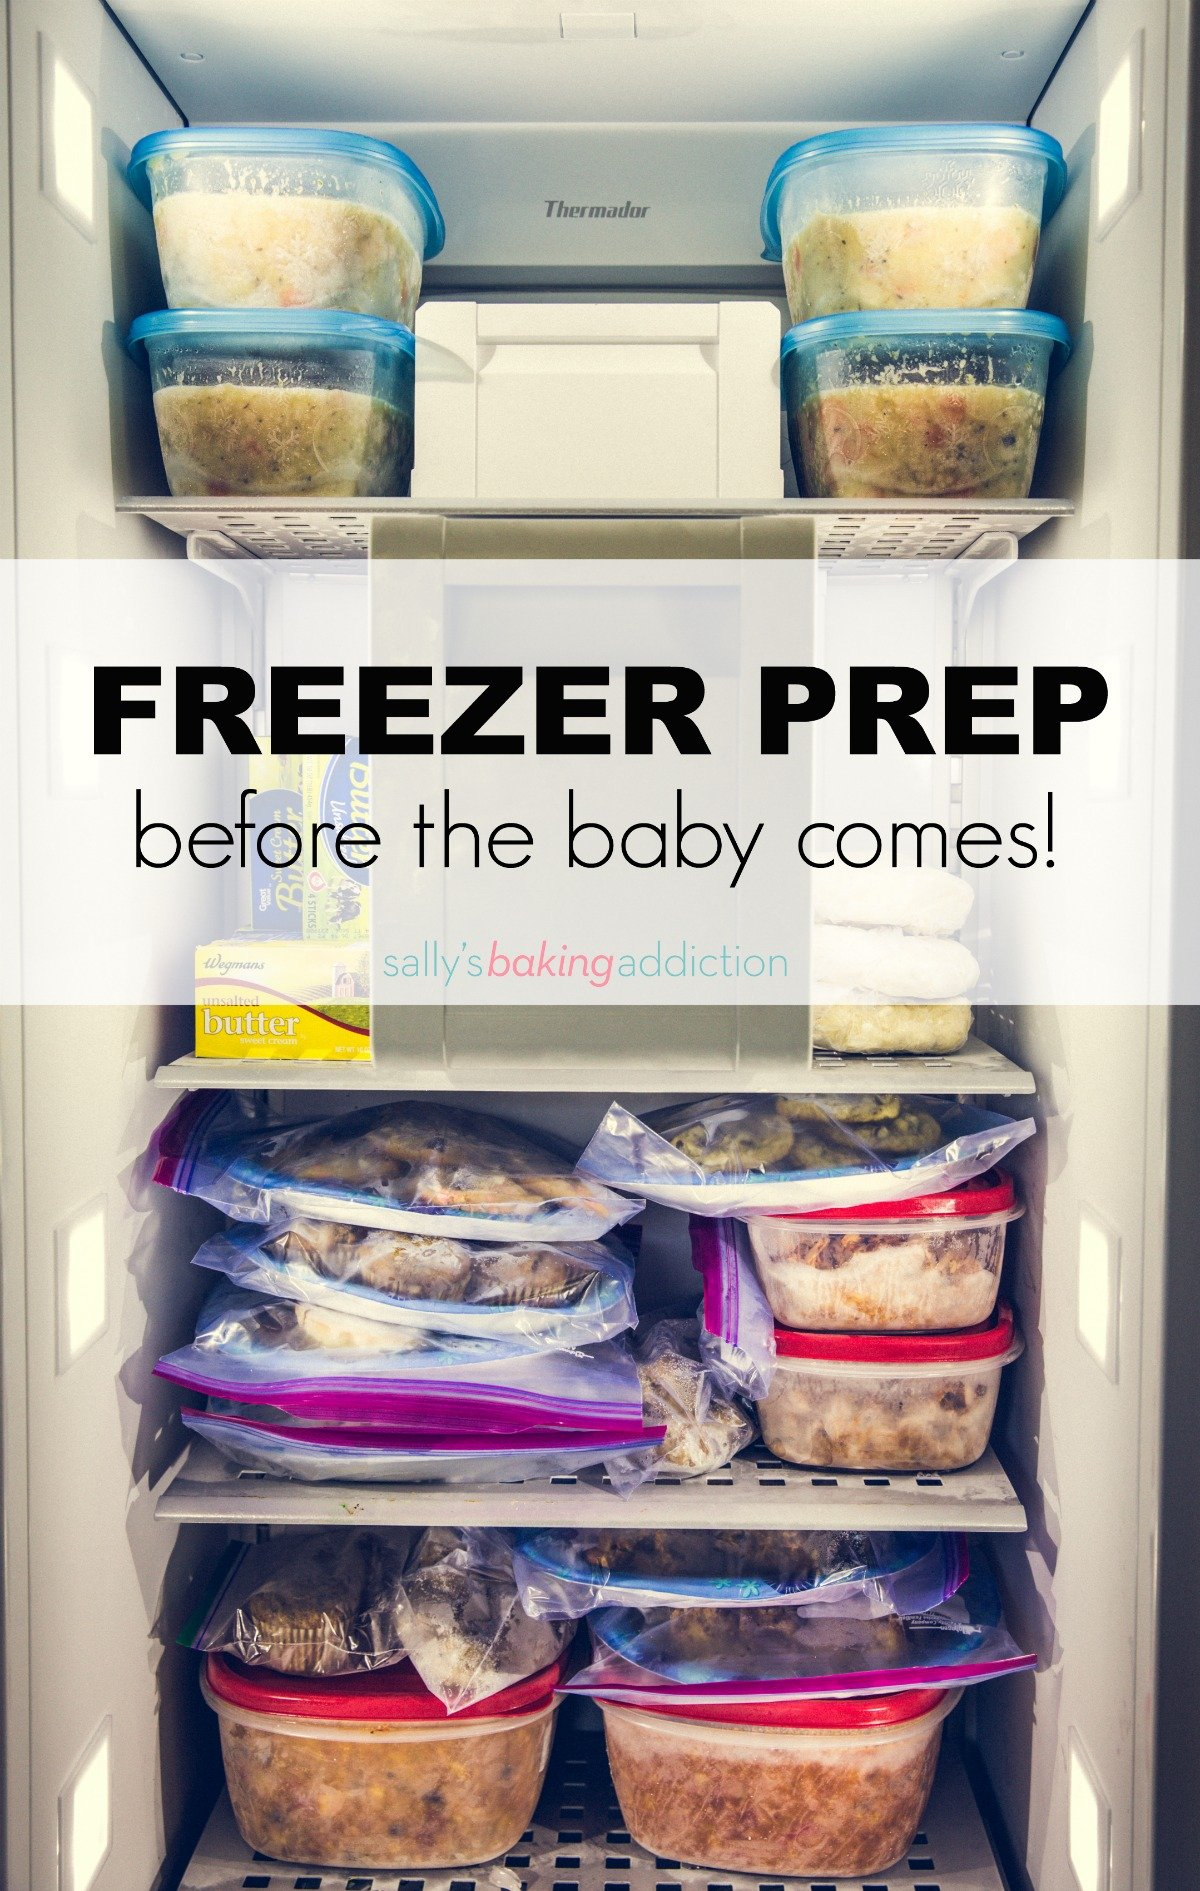 Freezer meals and snacks to prepare before the baby comes! Recipes on sallysbakingaddiction.com